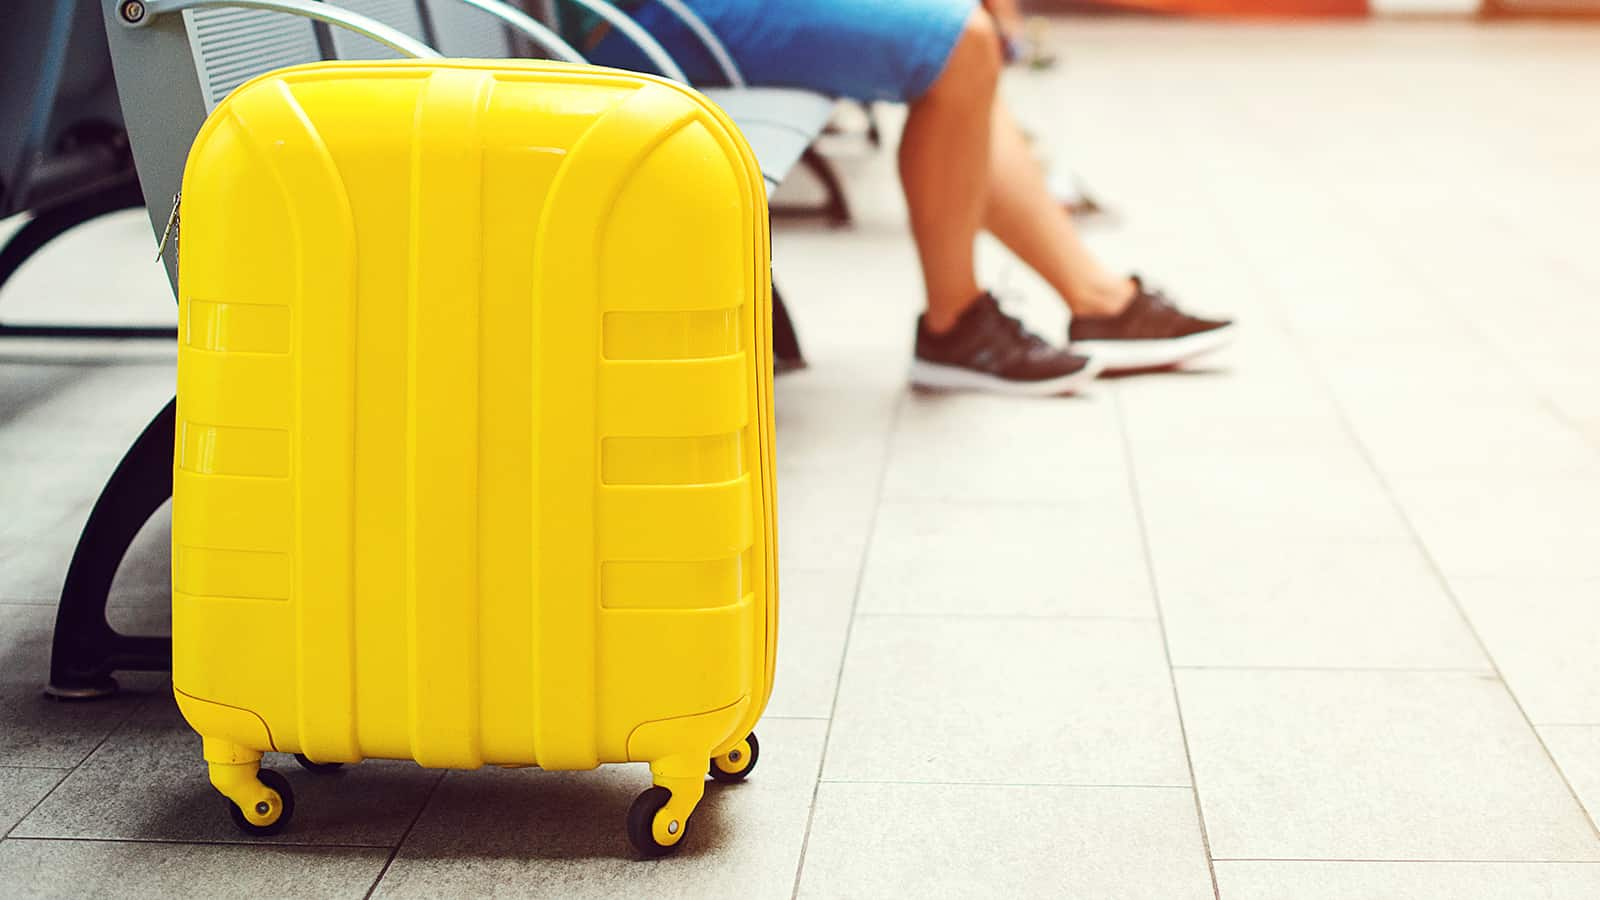 Yellow suitcase in the waiting room.